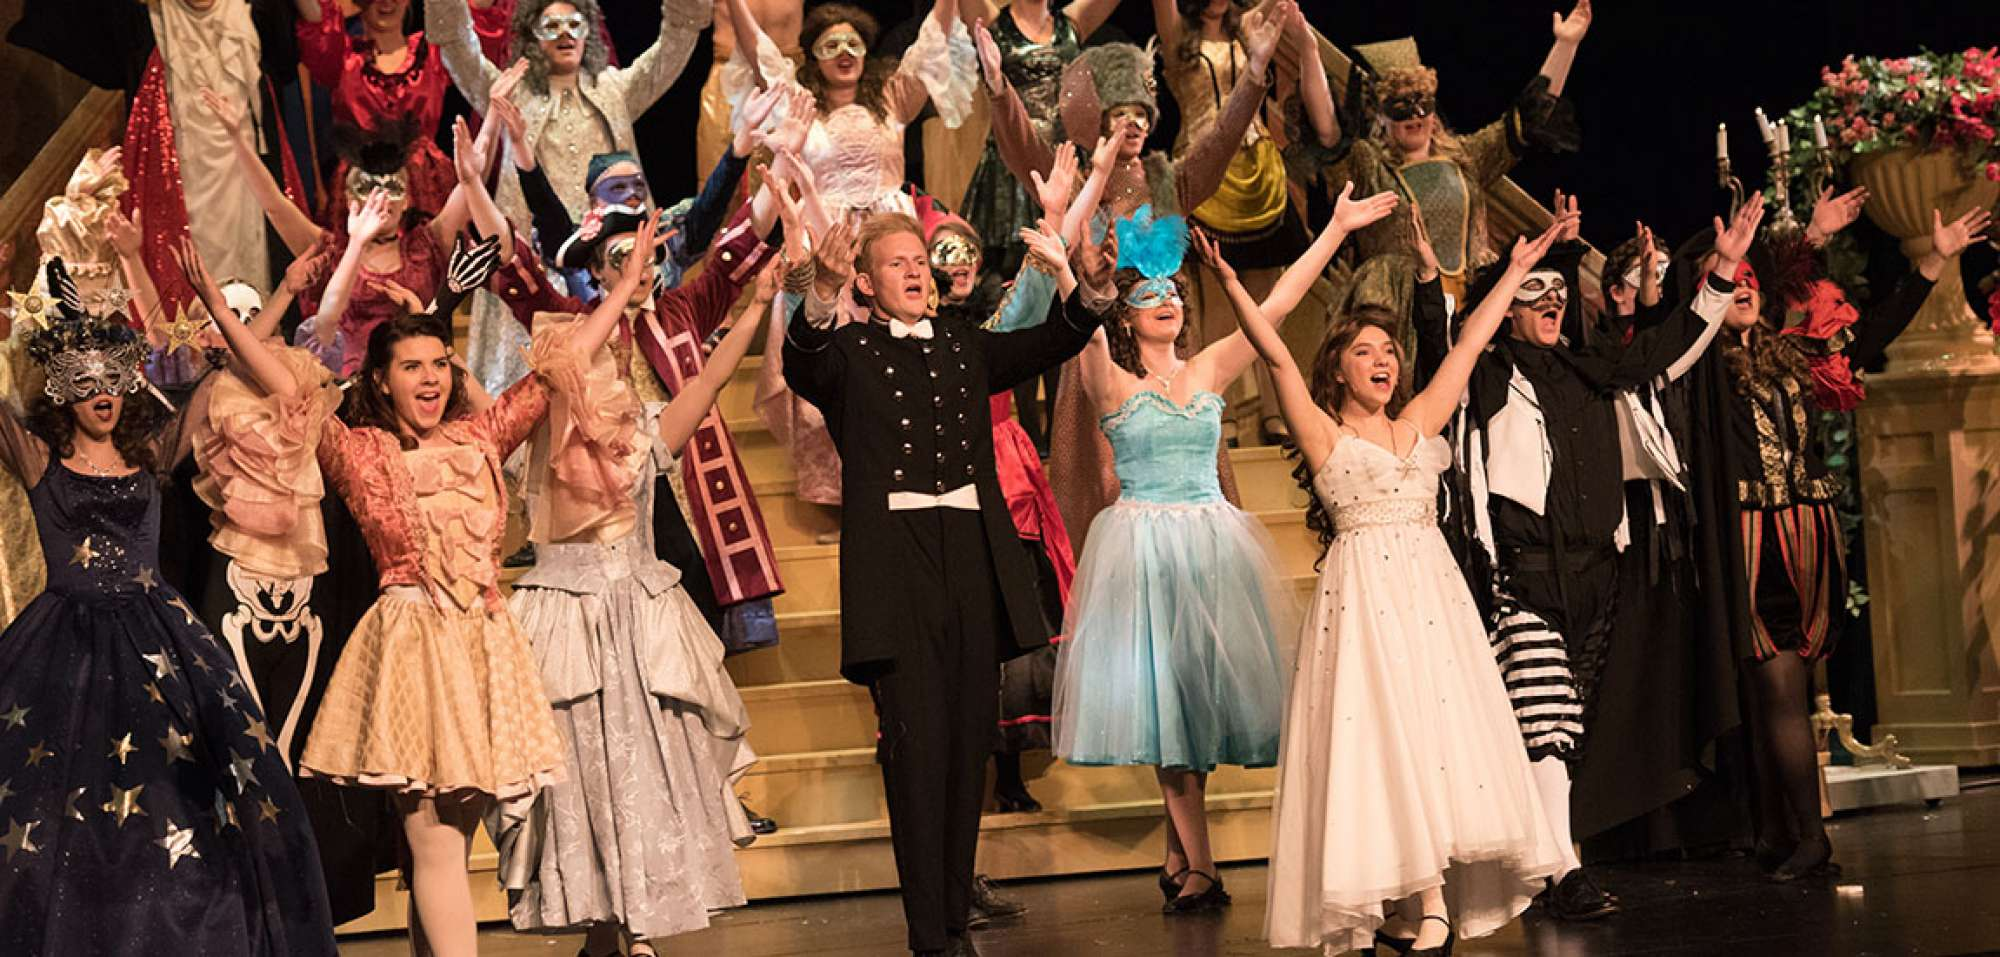 Costumed cast with arms raised in the grand finale of a musical number